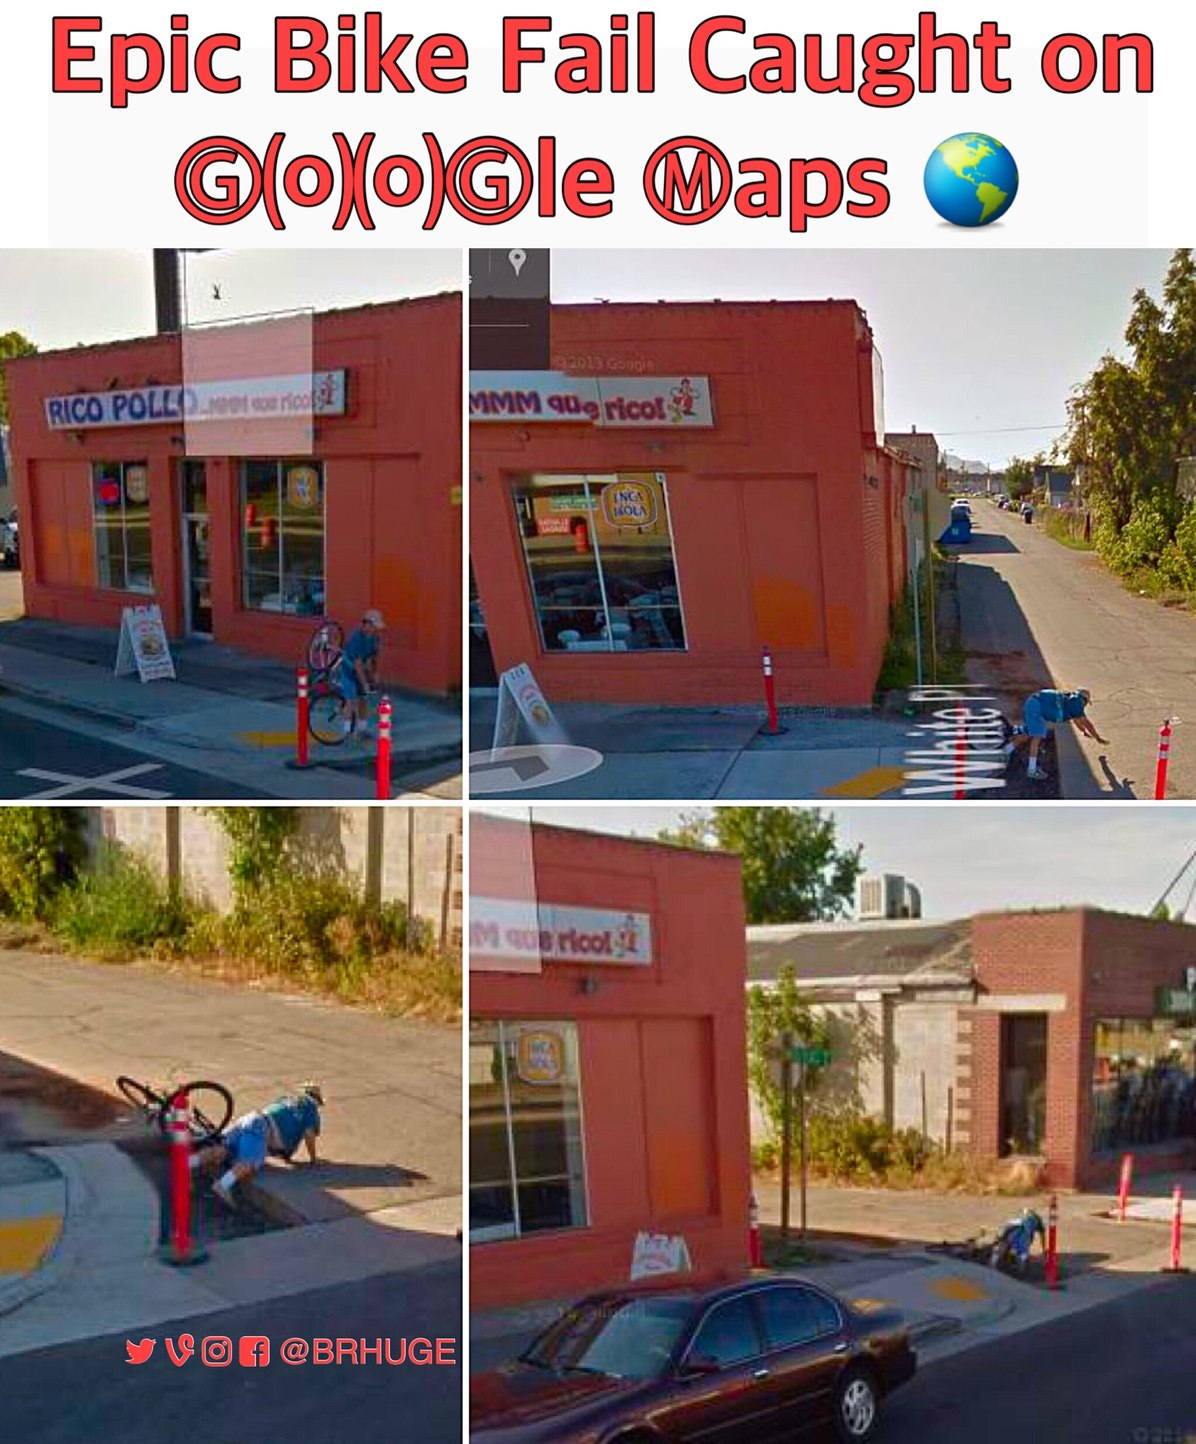 epic bike fail caught by Google maps - meme